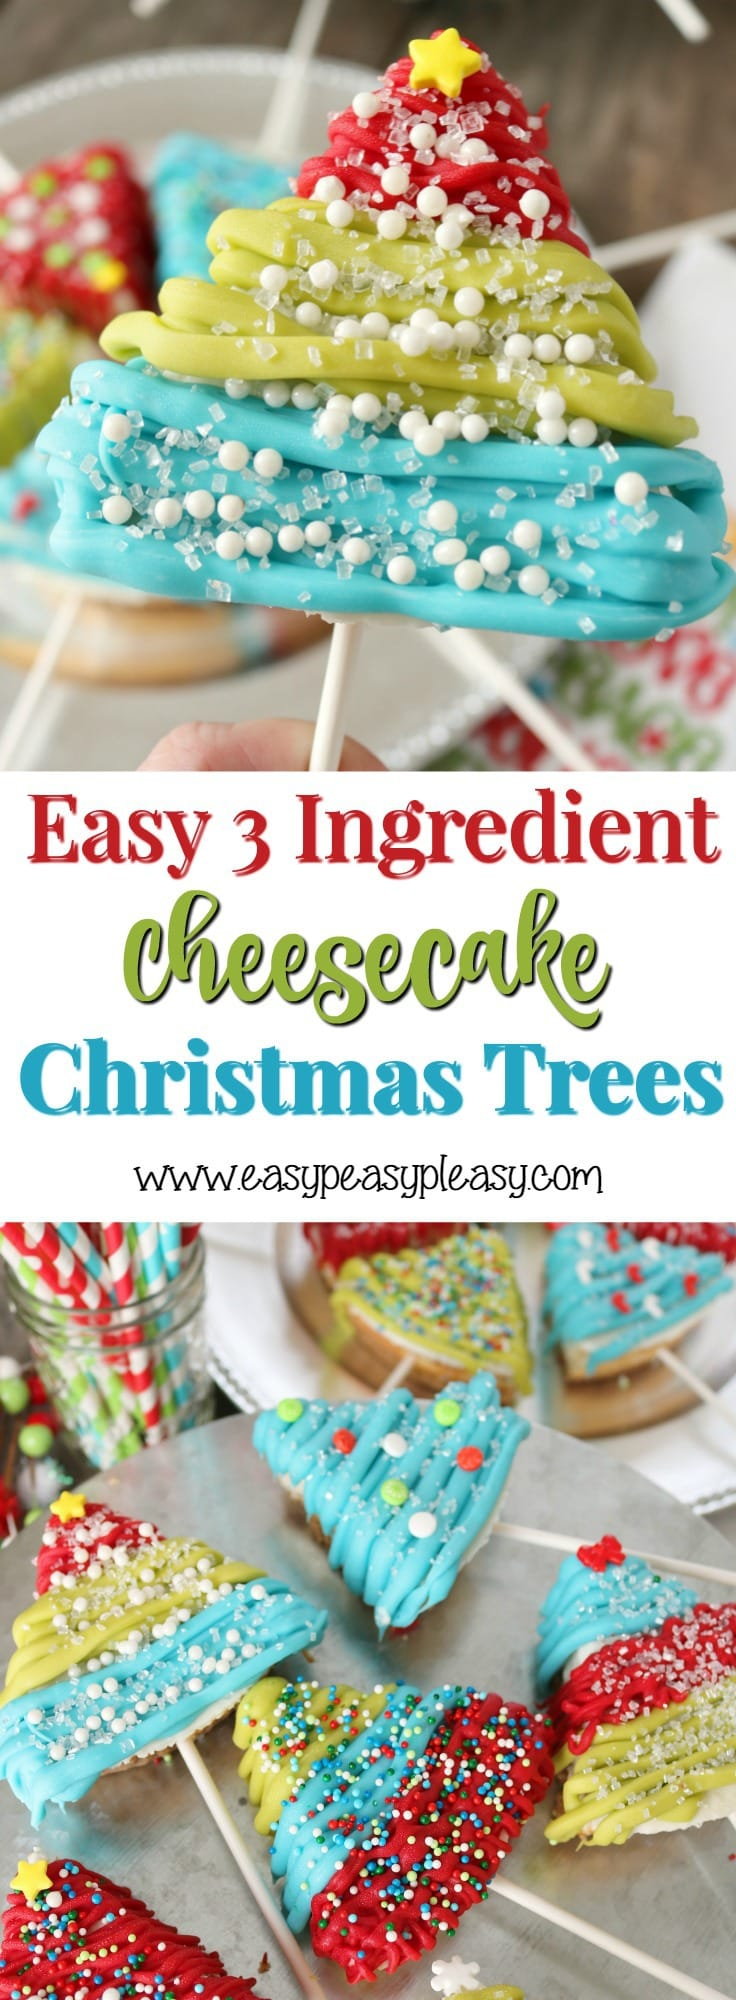 Get the full directions for these Easy 3 Ingredient Cheesecake Christmas Trees at easypeasypleasy.com